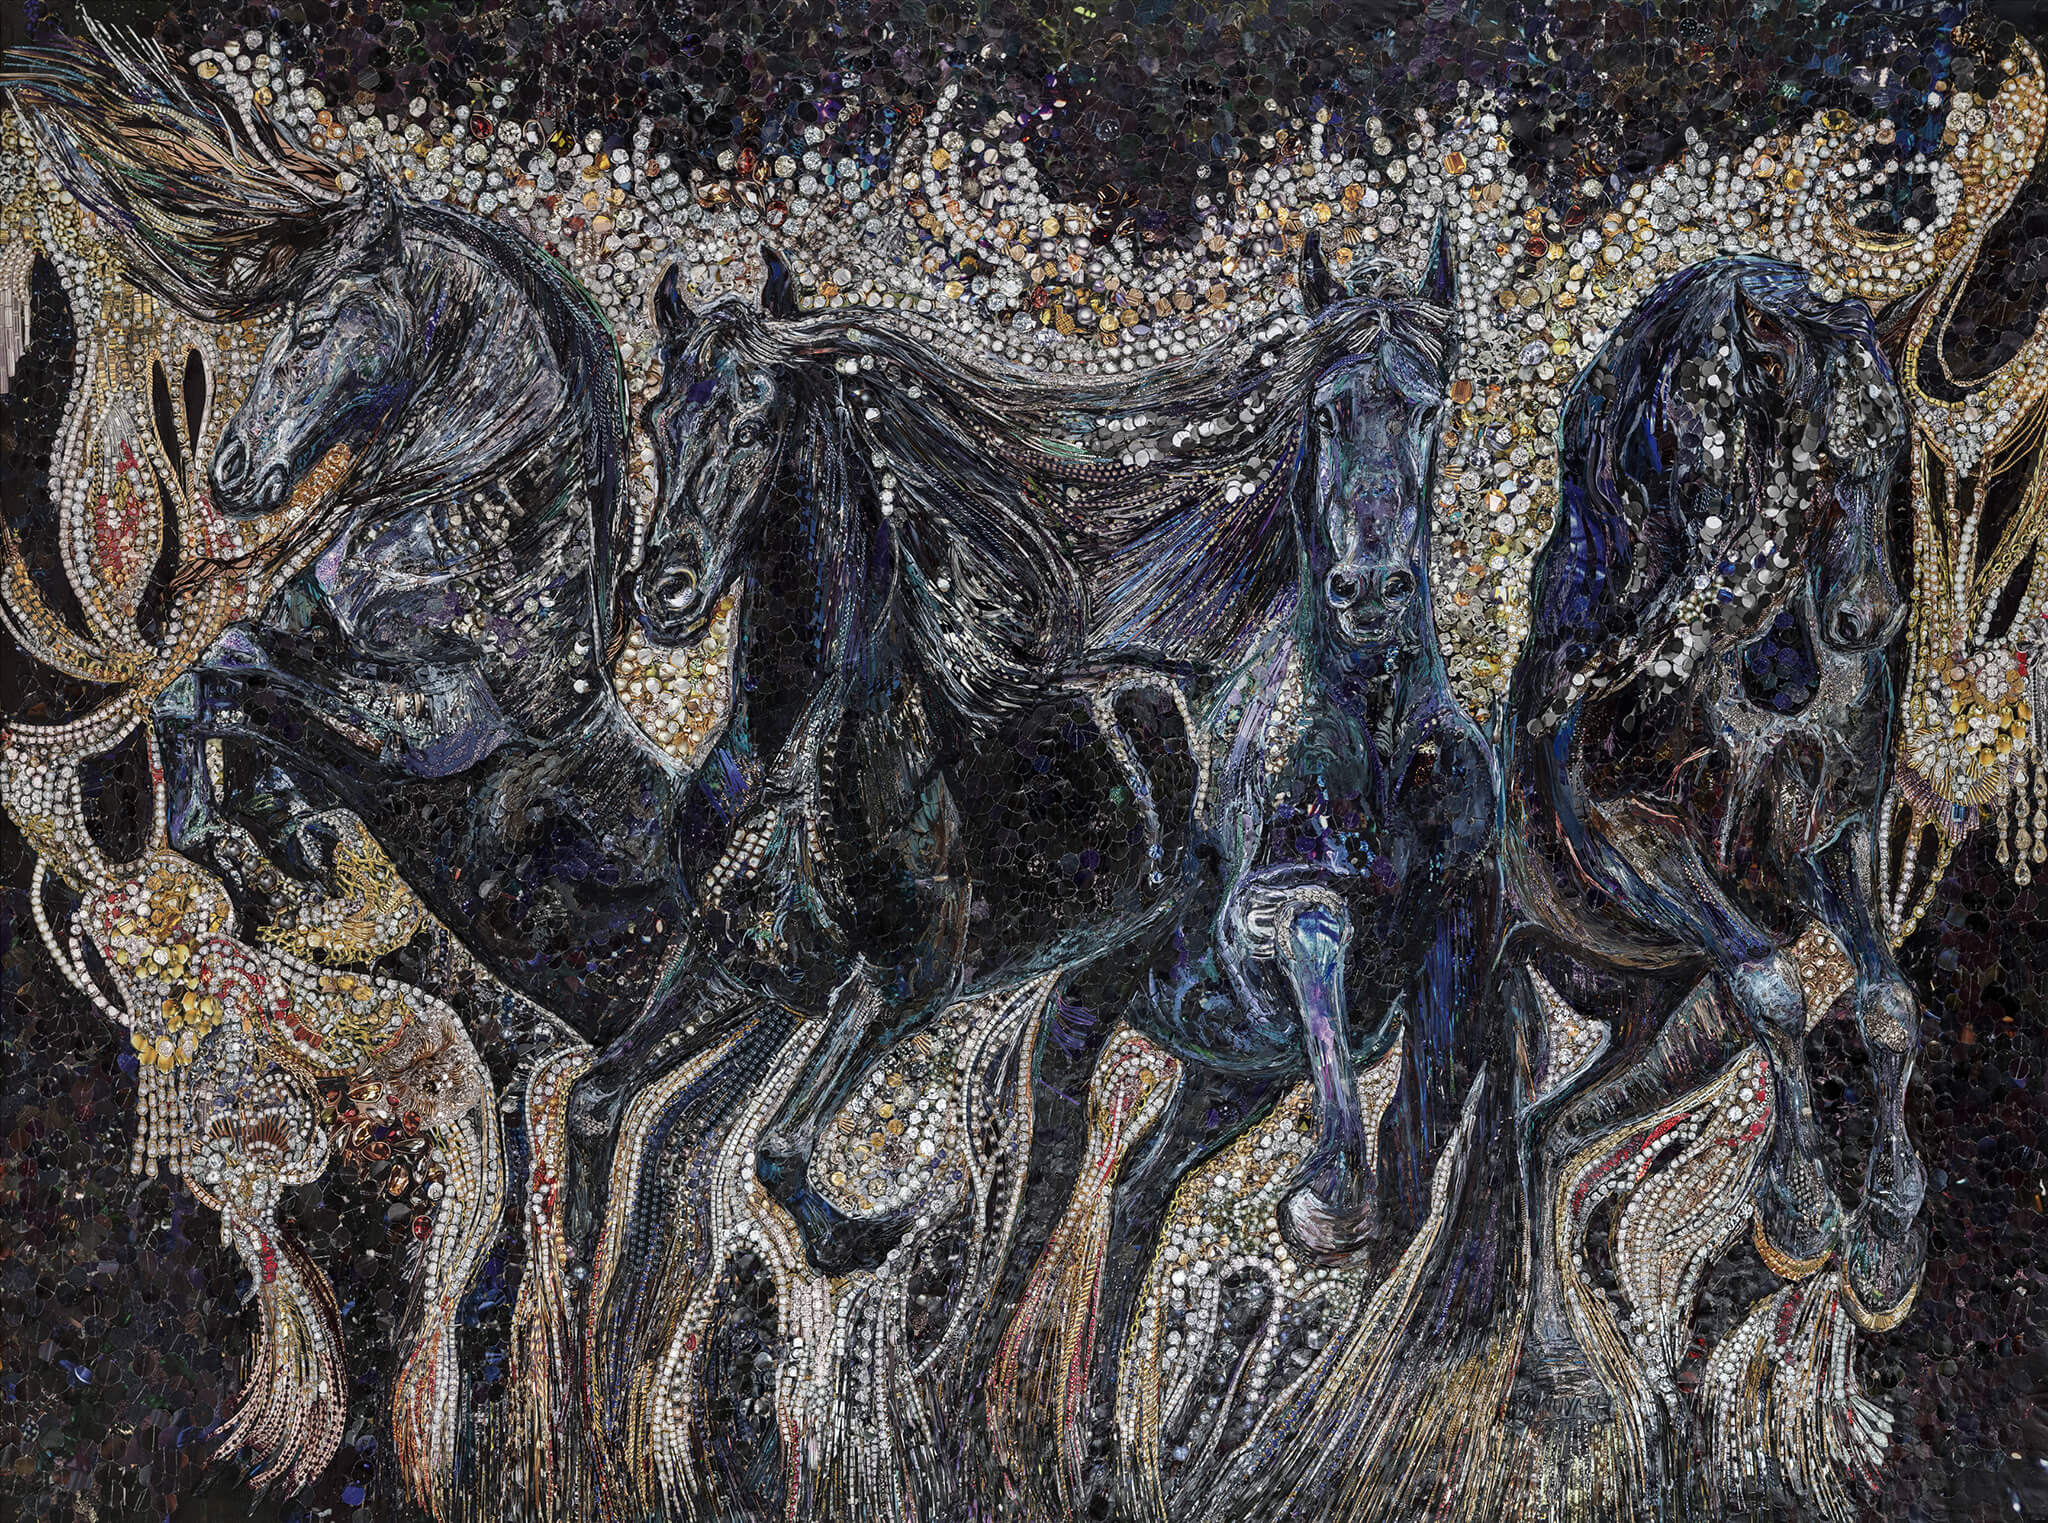 The Mares of Diomedes